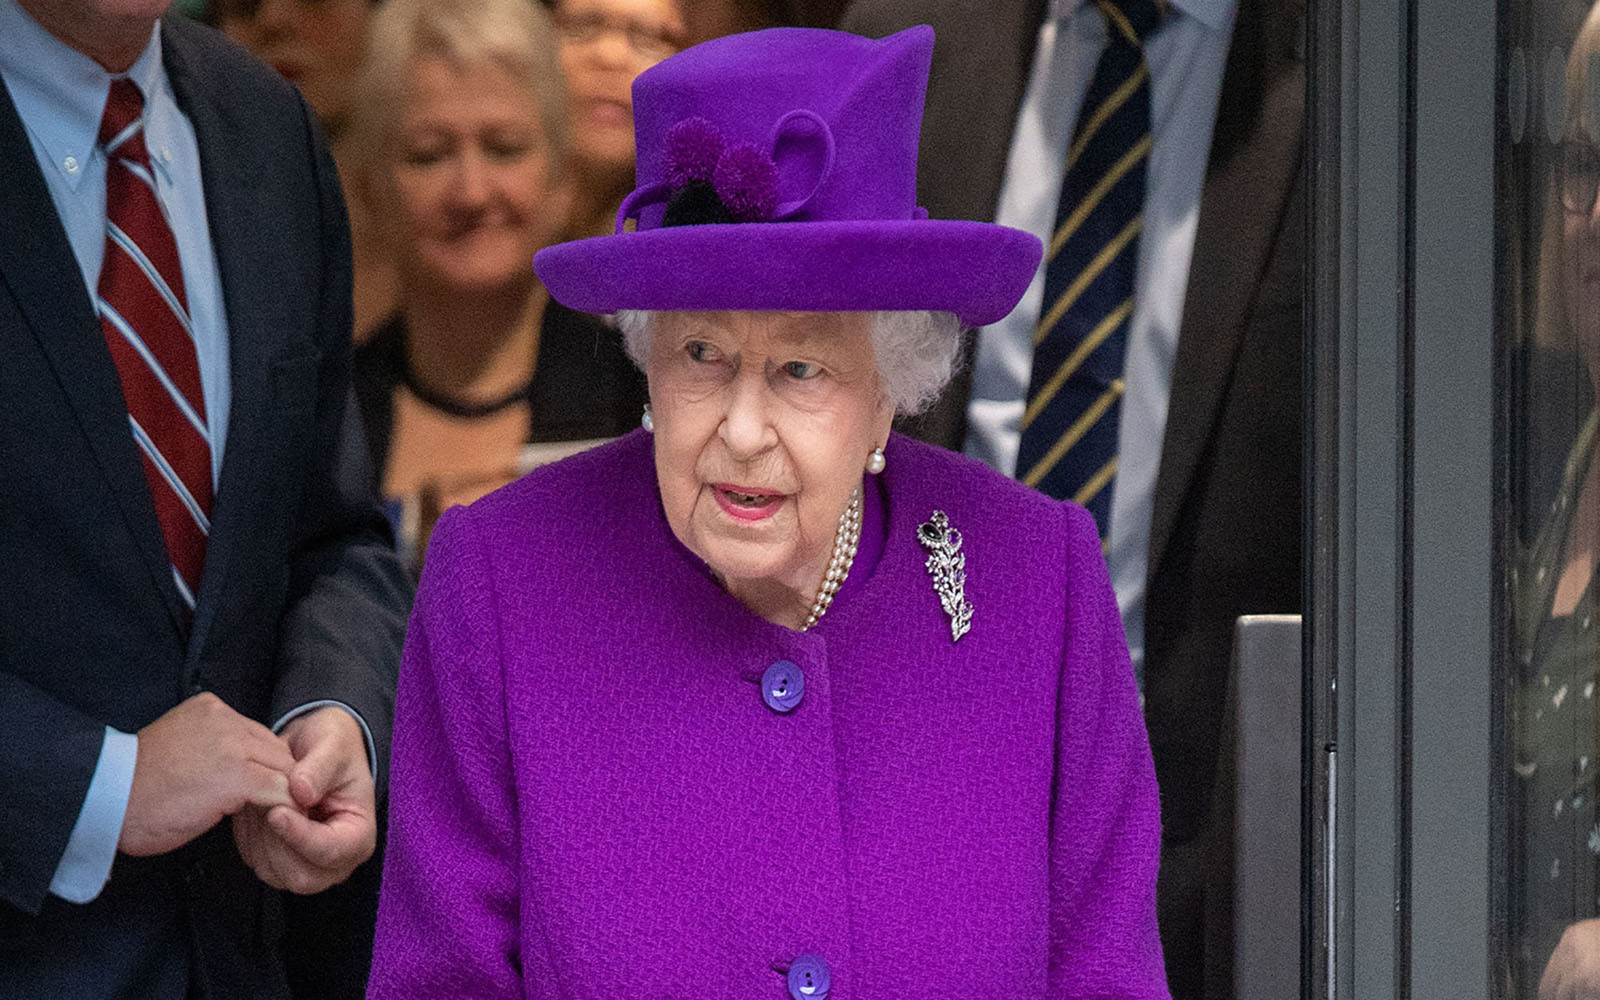 Queen 'set to broadcast coronavirus message to nation from Windsor Castle amid crisis'